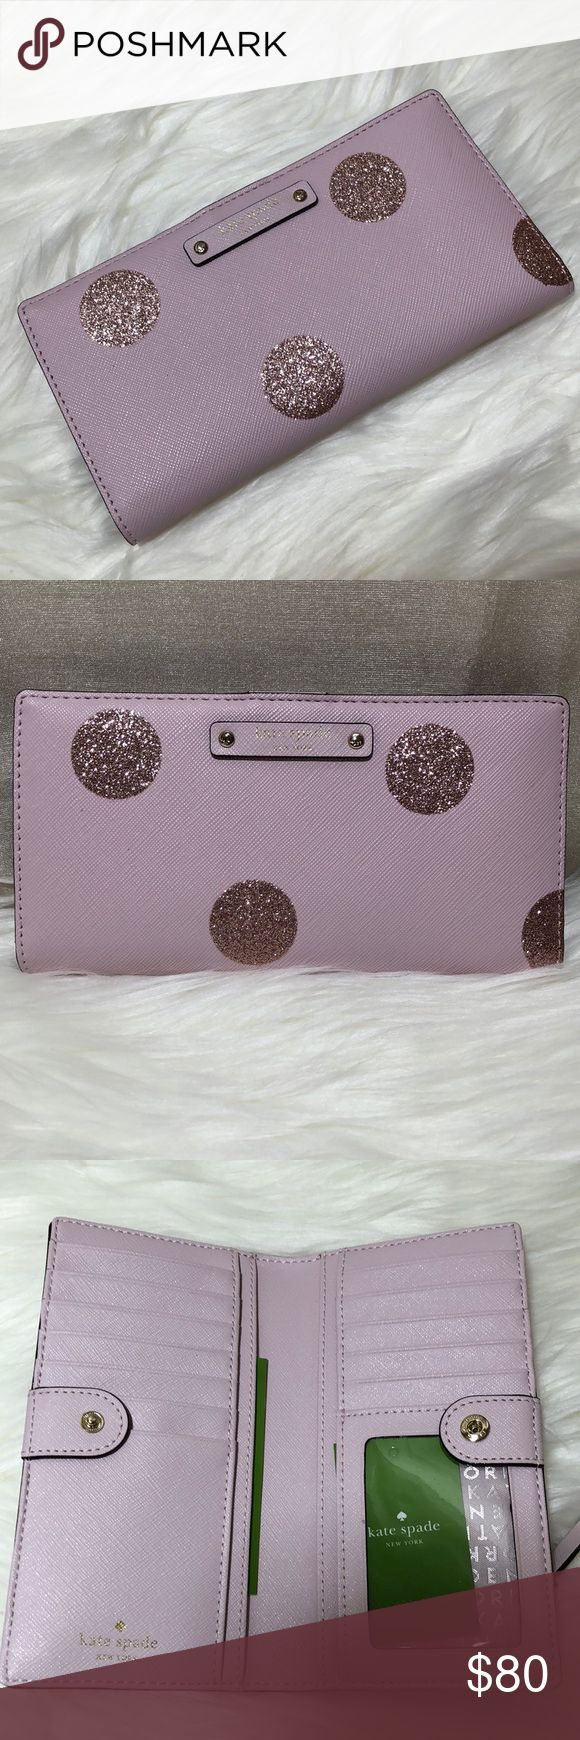 "🎉SALE🎉 Kate spade haven lane glitter wallet Trendy must have for the spring and summer!  🌷 New with tags 💯% Authentic ❌No trade PRICE FIRM   SIZE  7"" x 3.5""  DETAILS  Saffiano textured pvc Magnetic snap closure  Zipper pocket Card slots Interior slide pockets kate spade Bags Wallets"